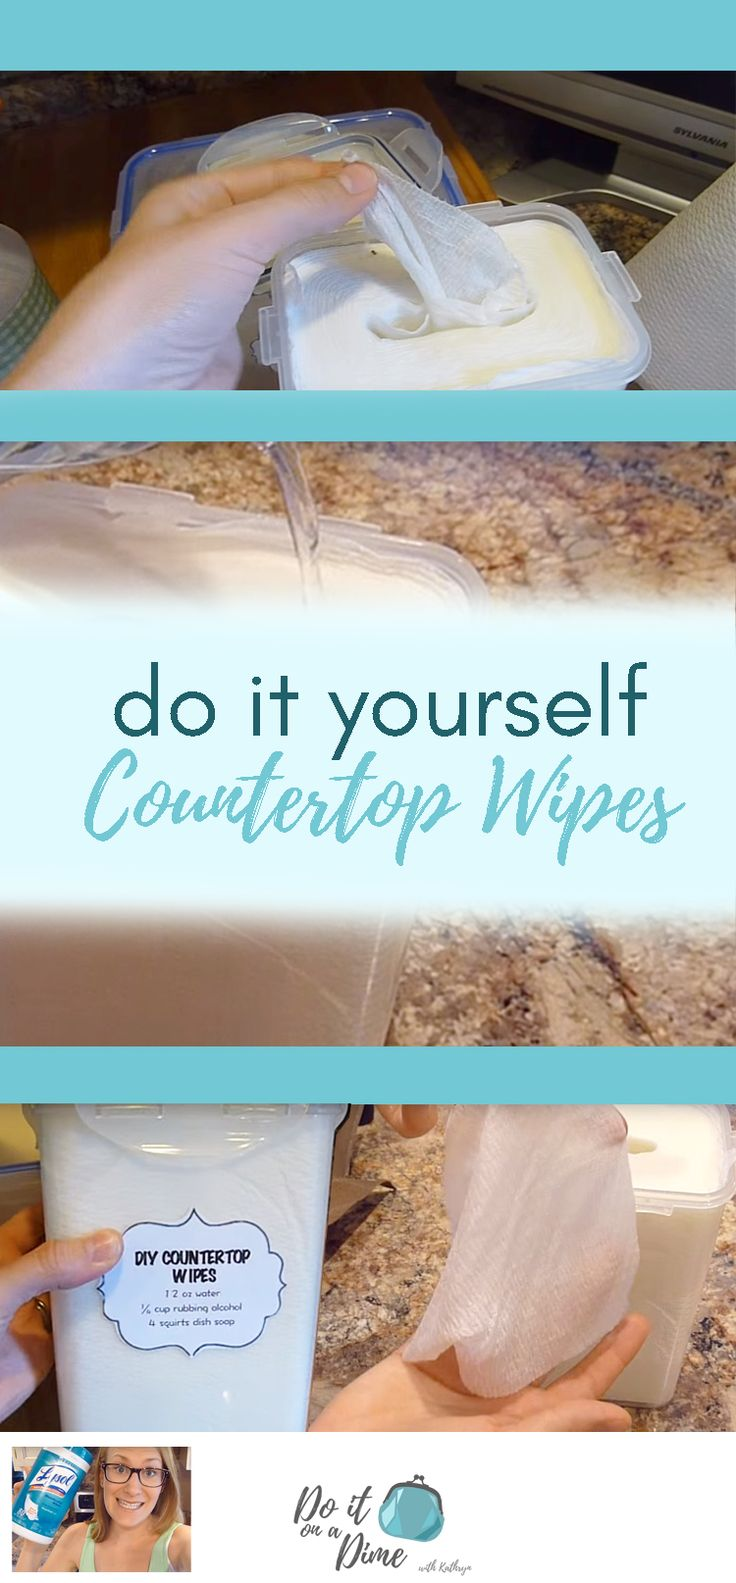 26 best cleaning tips images on pinterest cleaning hacks cleaning how to keep a clean kitchen plus diy lysol wipes solutioingenieria Choice Image